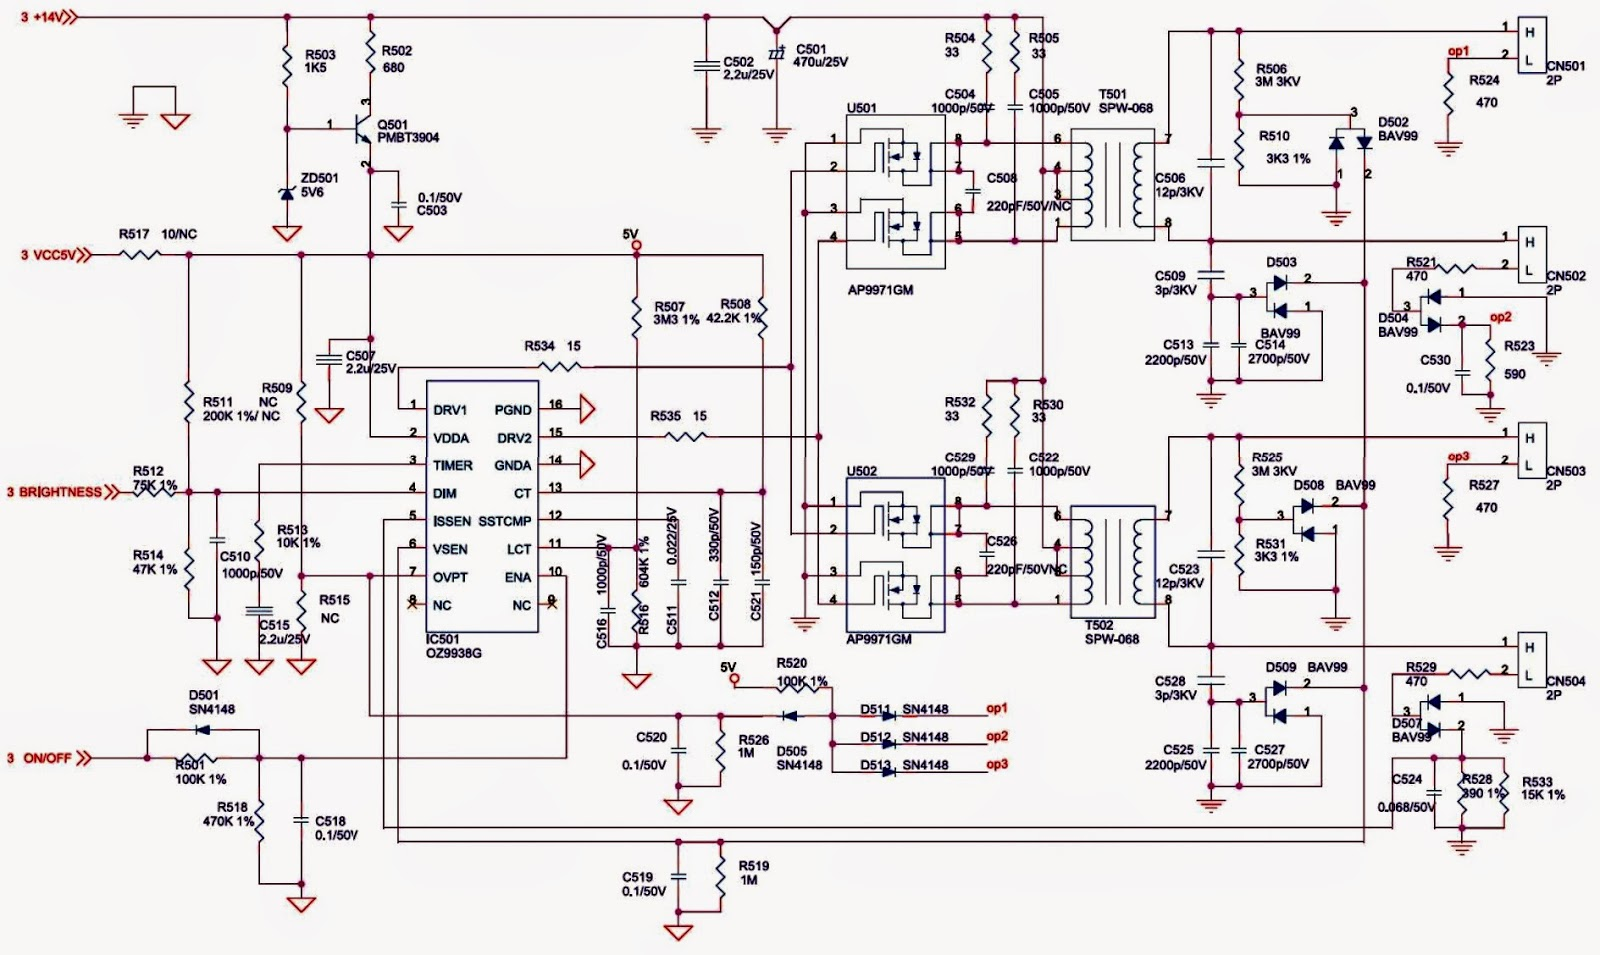 SAMSUNG 920NW 19 Inch LCD MONITOR Circuit Diagram SMPS and Back